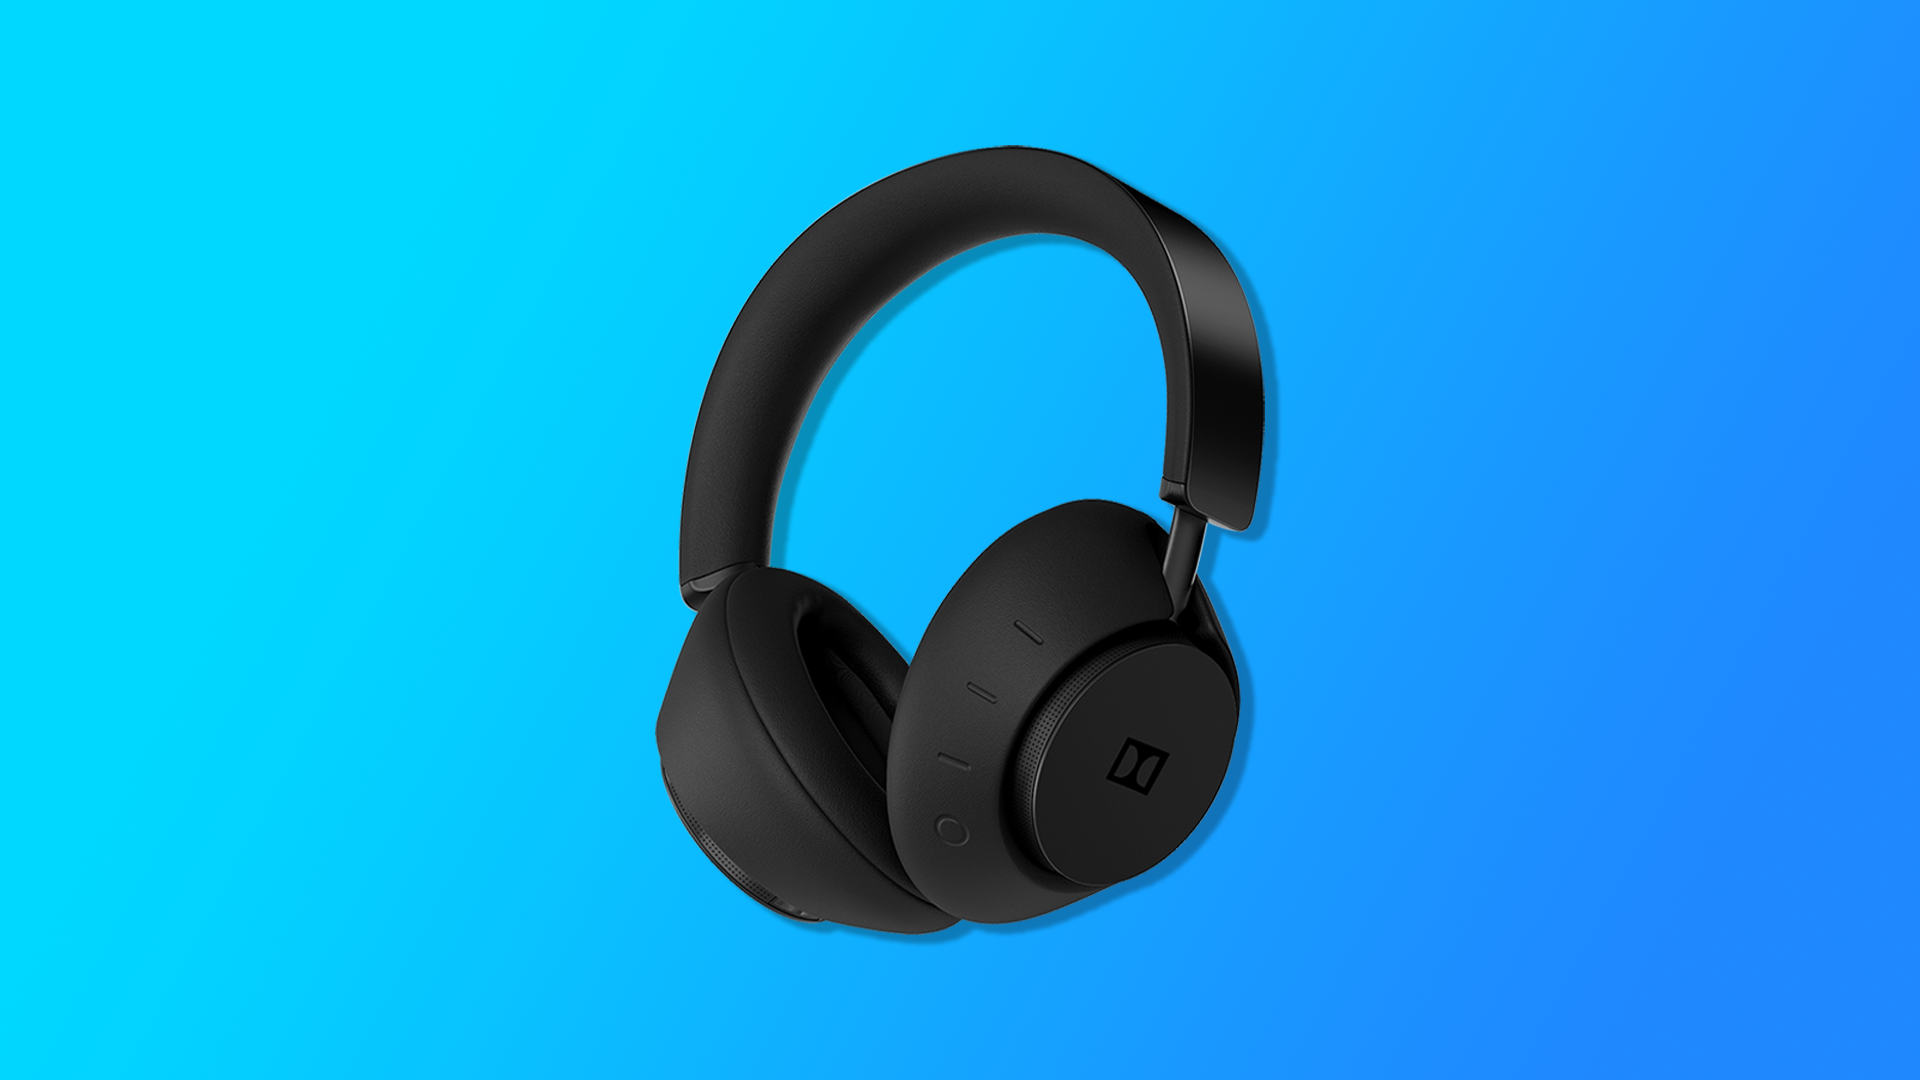 We sought $600 Dolby Headphone size. They are worth the huge price tag?